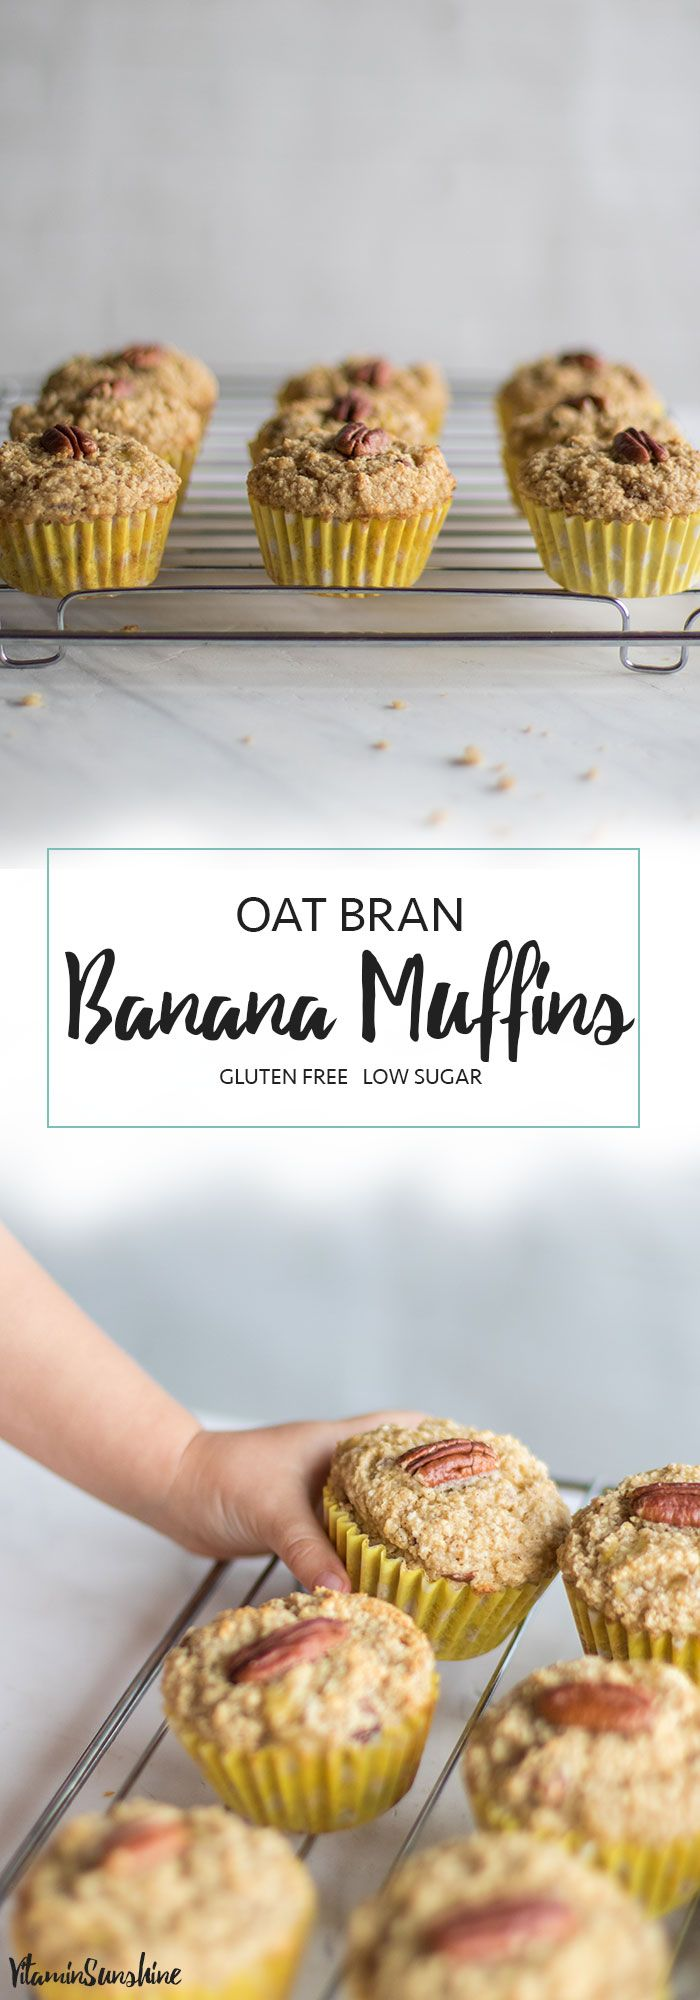 Healthy Banana Nut Muffins / These healthy banana muffins are mostly fruit sweetened, made with oat bran for extra protein and fiber.